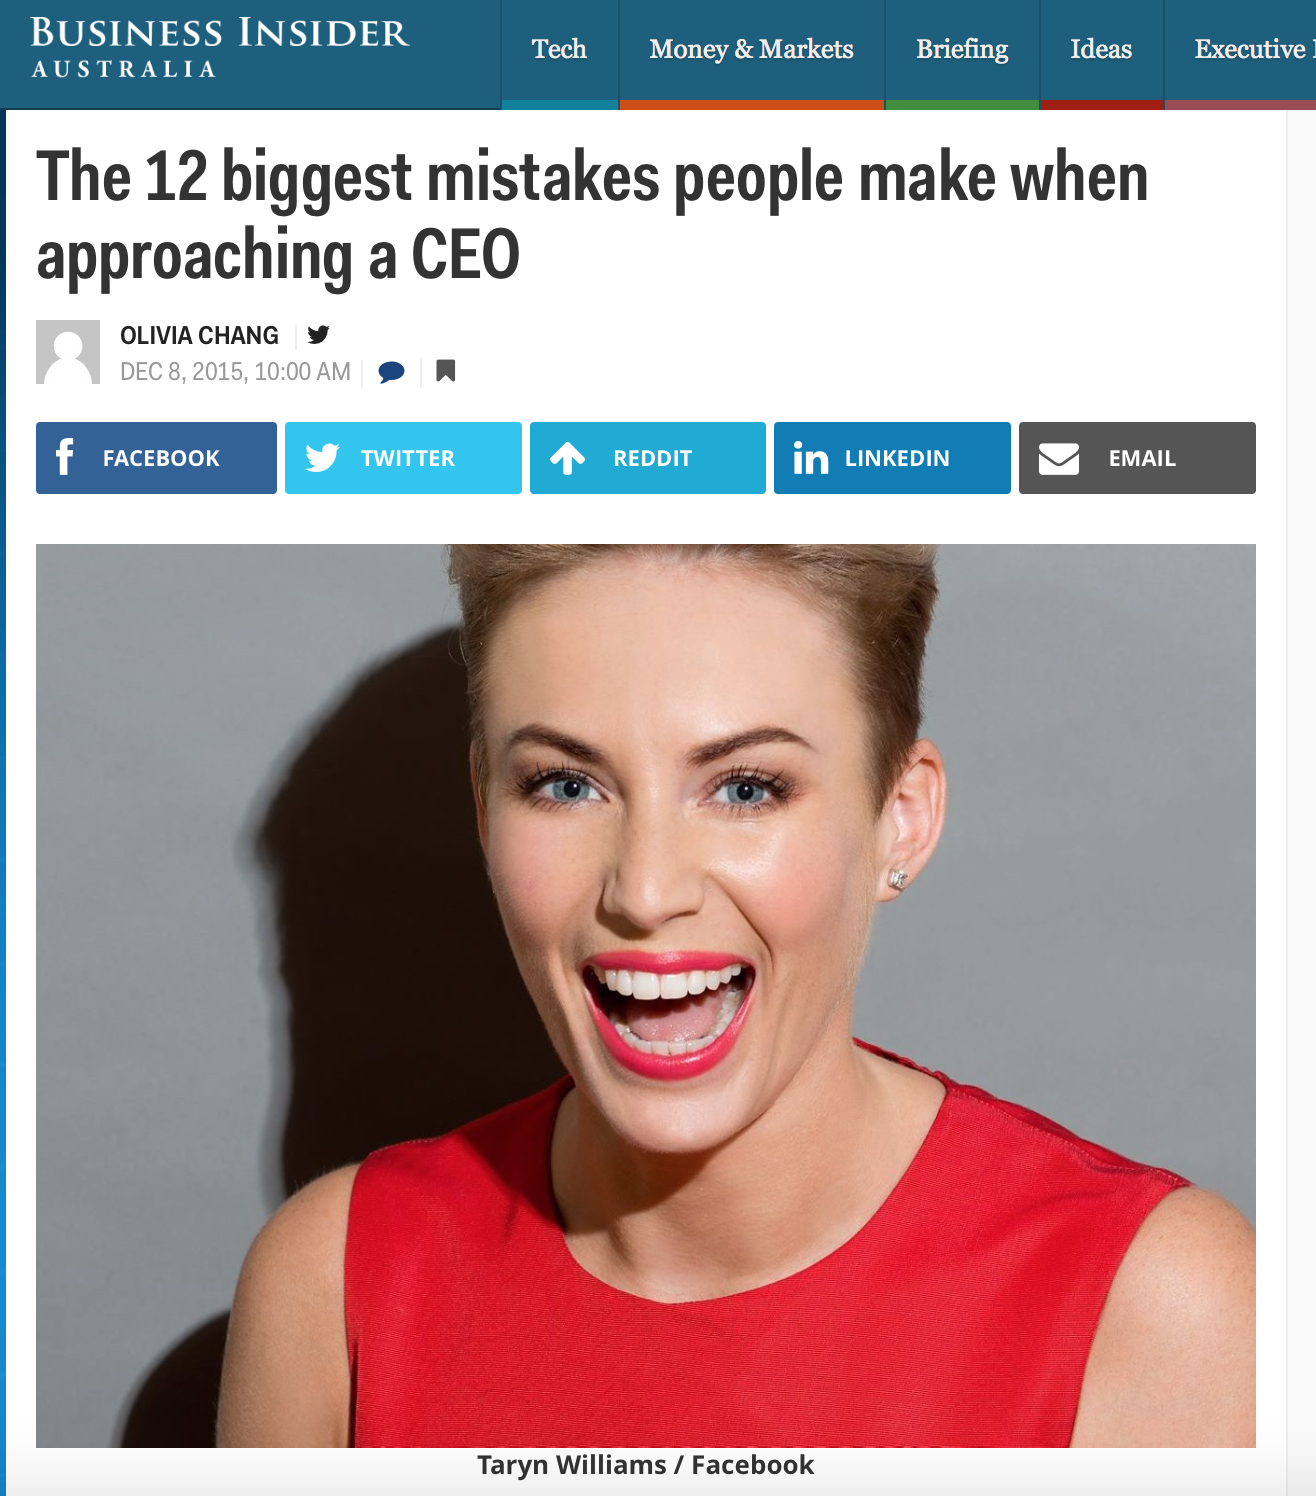 http://www.businessinsider.com.au/the-12-biggest-mistakes-people-make-when-approaching-a-ceo-2015-12